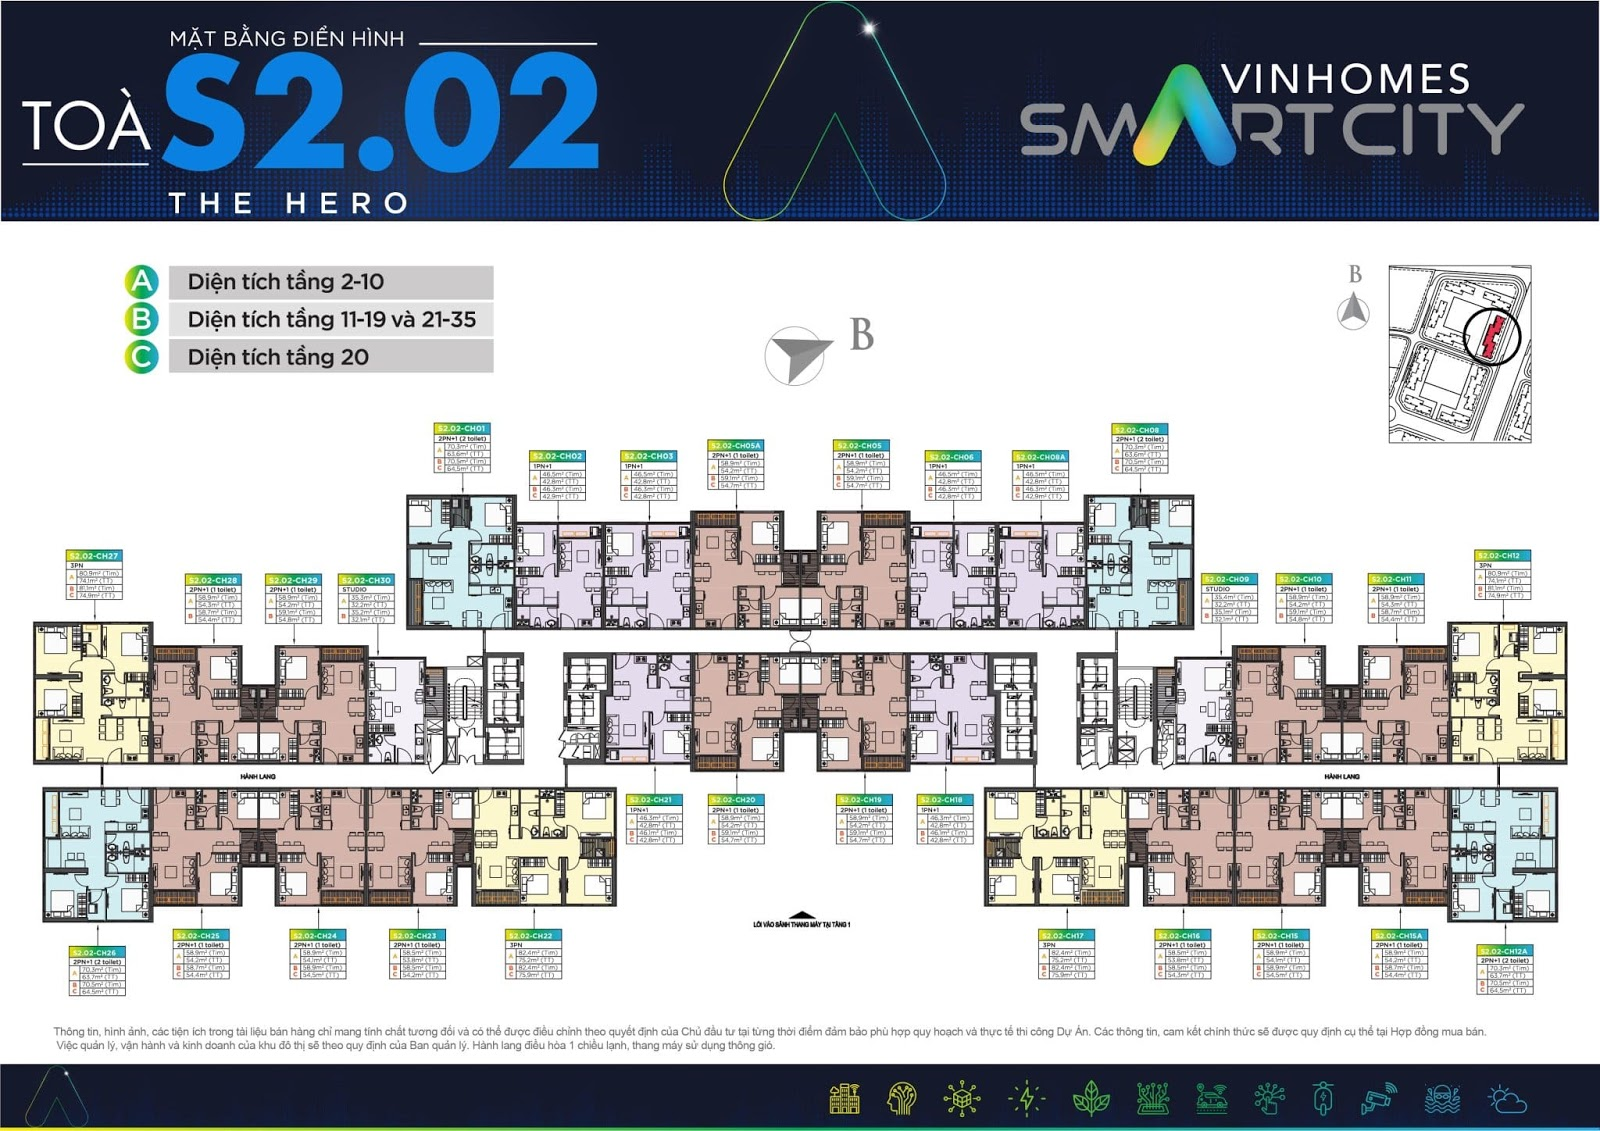 toa s202 vinhomes smart city